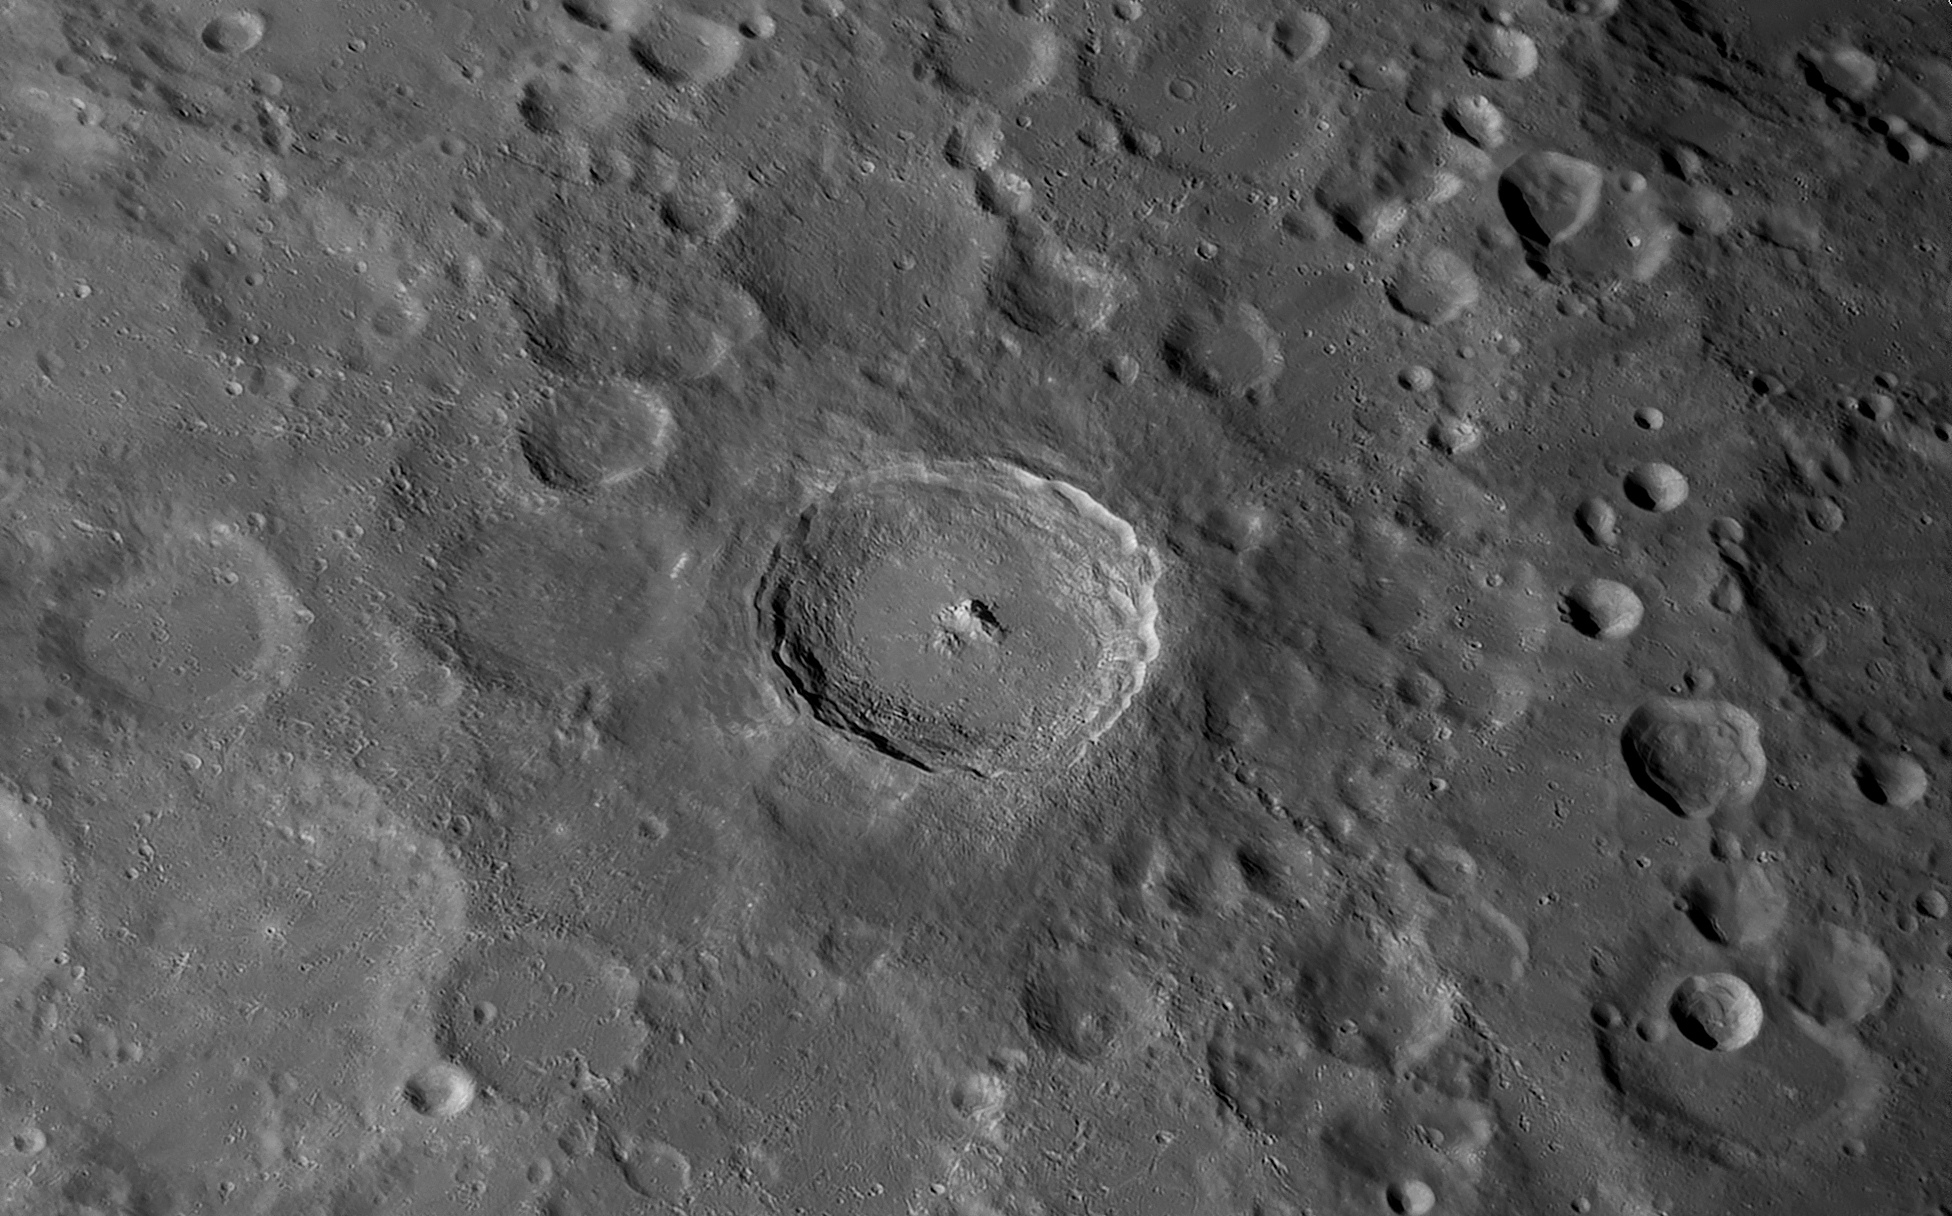 Tycho au C14, le 4 Avril 2020: 700 images, caméra 174MM, Baader FFC, ADC Pierro Astro, filtre Astronomik orange 2c